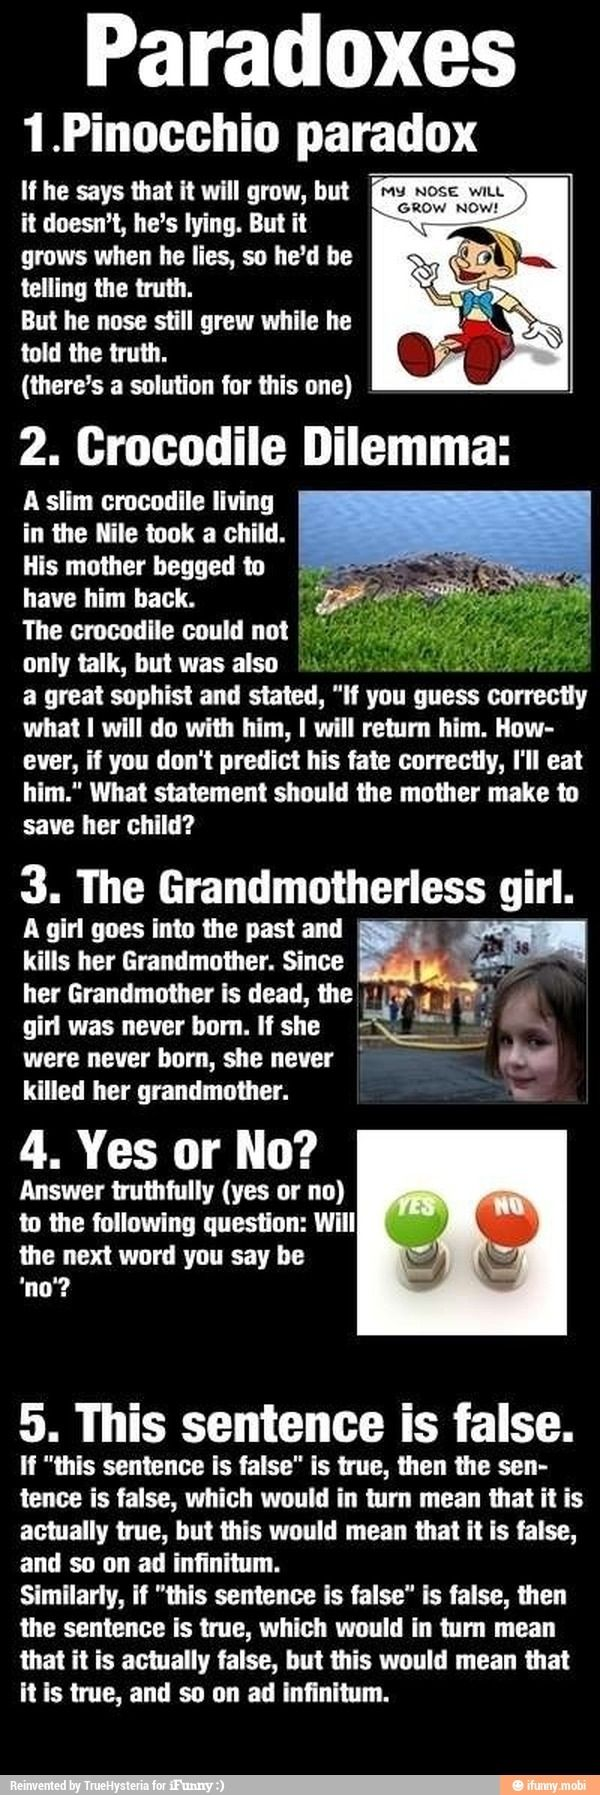 *blinks* Okay the Crocodile Dilemma makes sense, and the Yes No one... and the Grand motherless Child one... but the others... sheeeessshhh